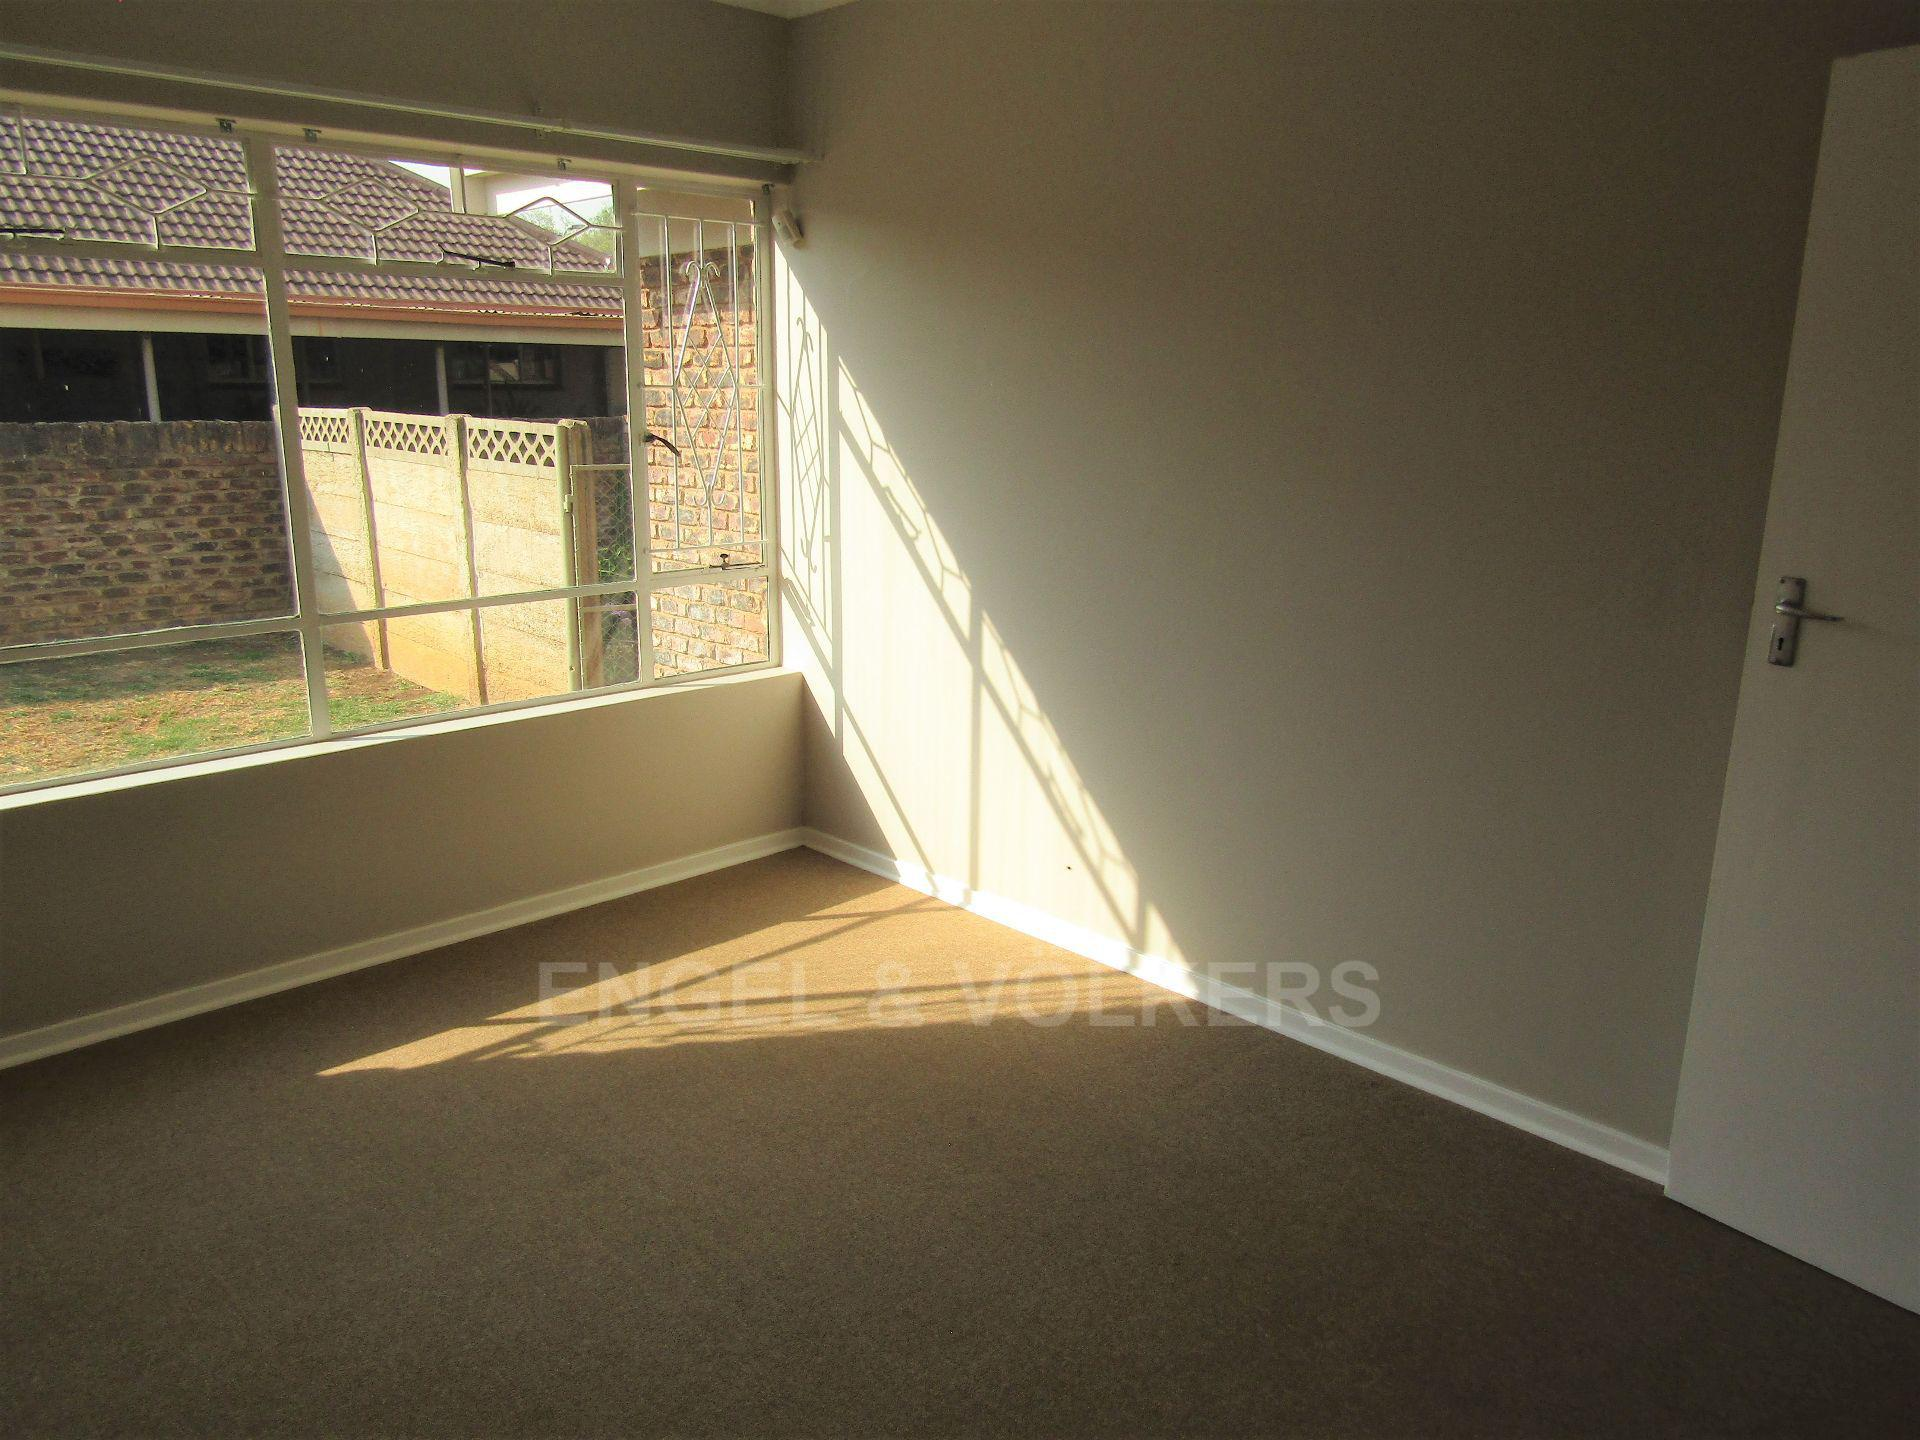 Potchefstroom Central property for sale. Ref No: 13522202. Picture no 21